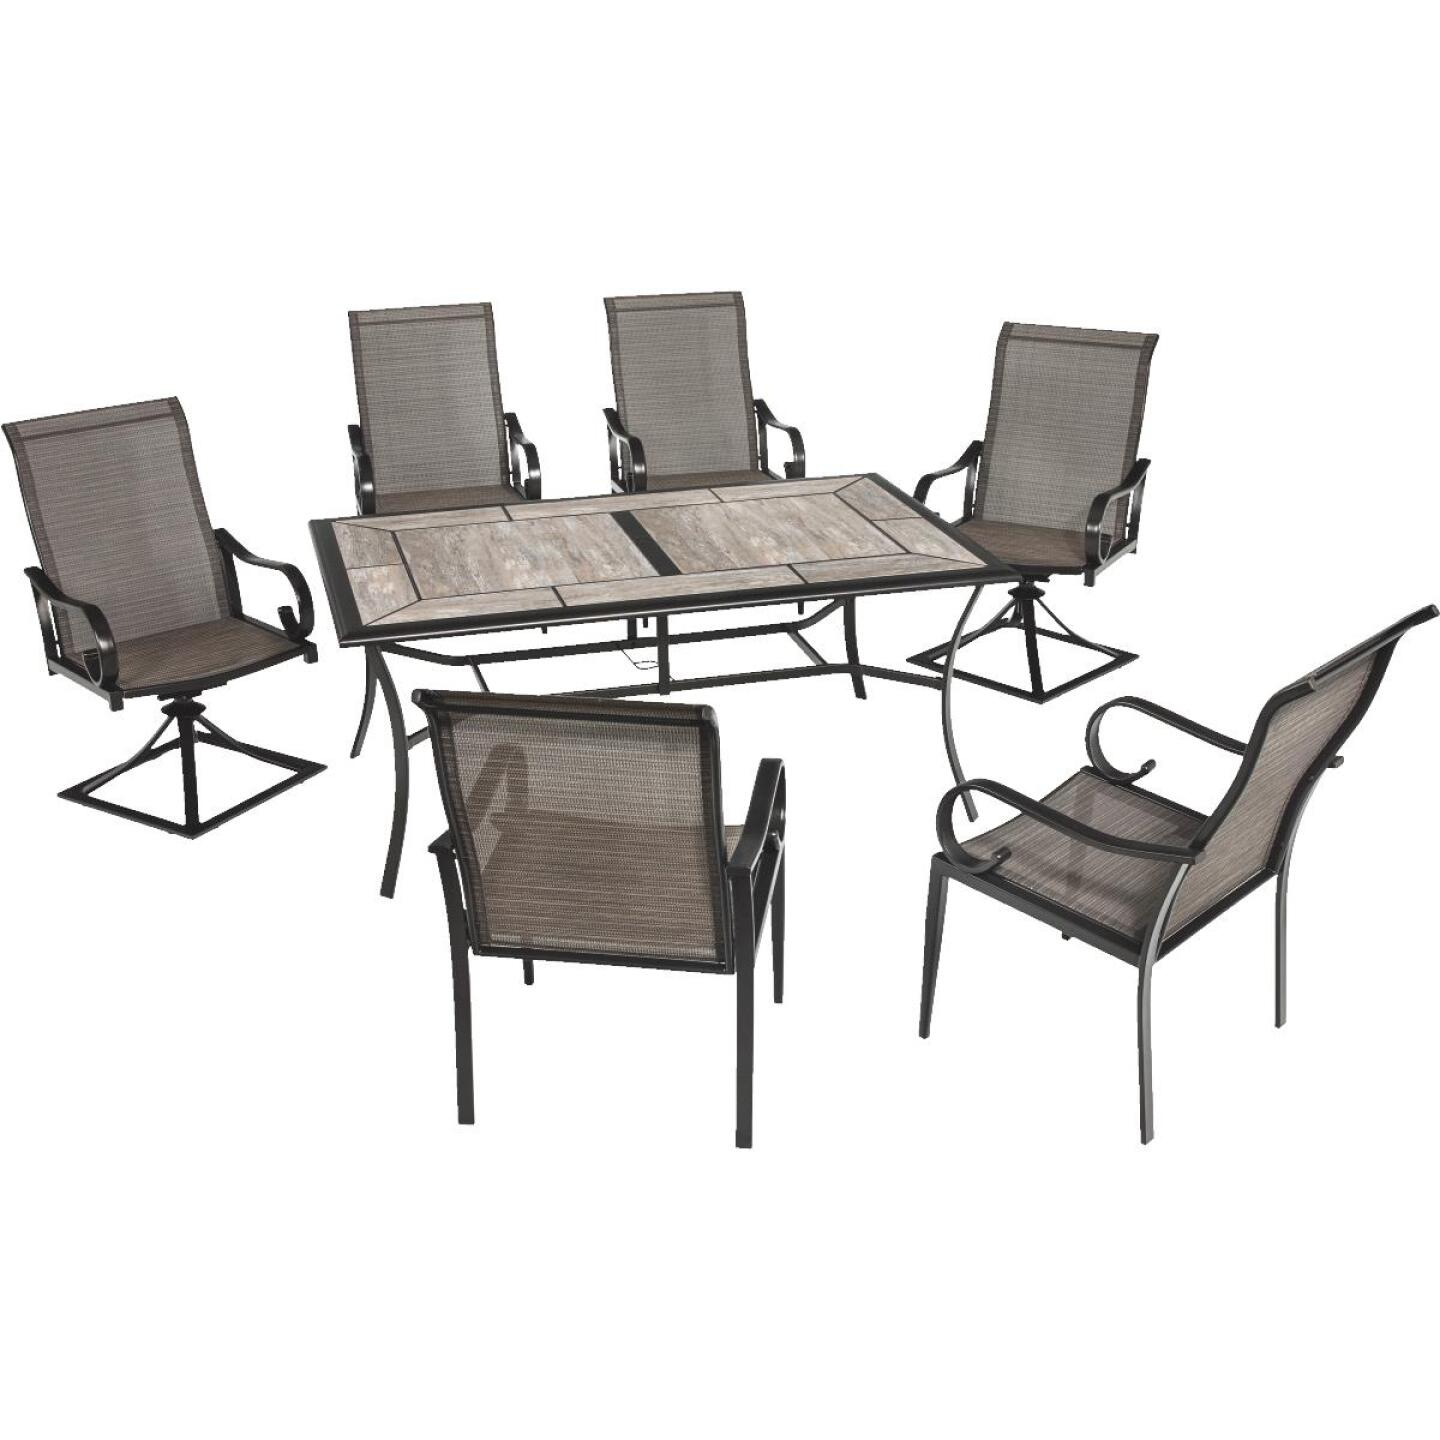 Outdoor Expressions Berkshire 7-Piece Dining Set Image 68